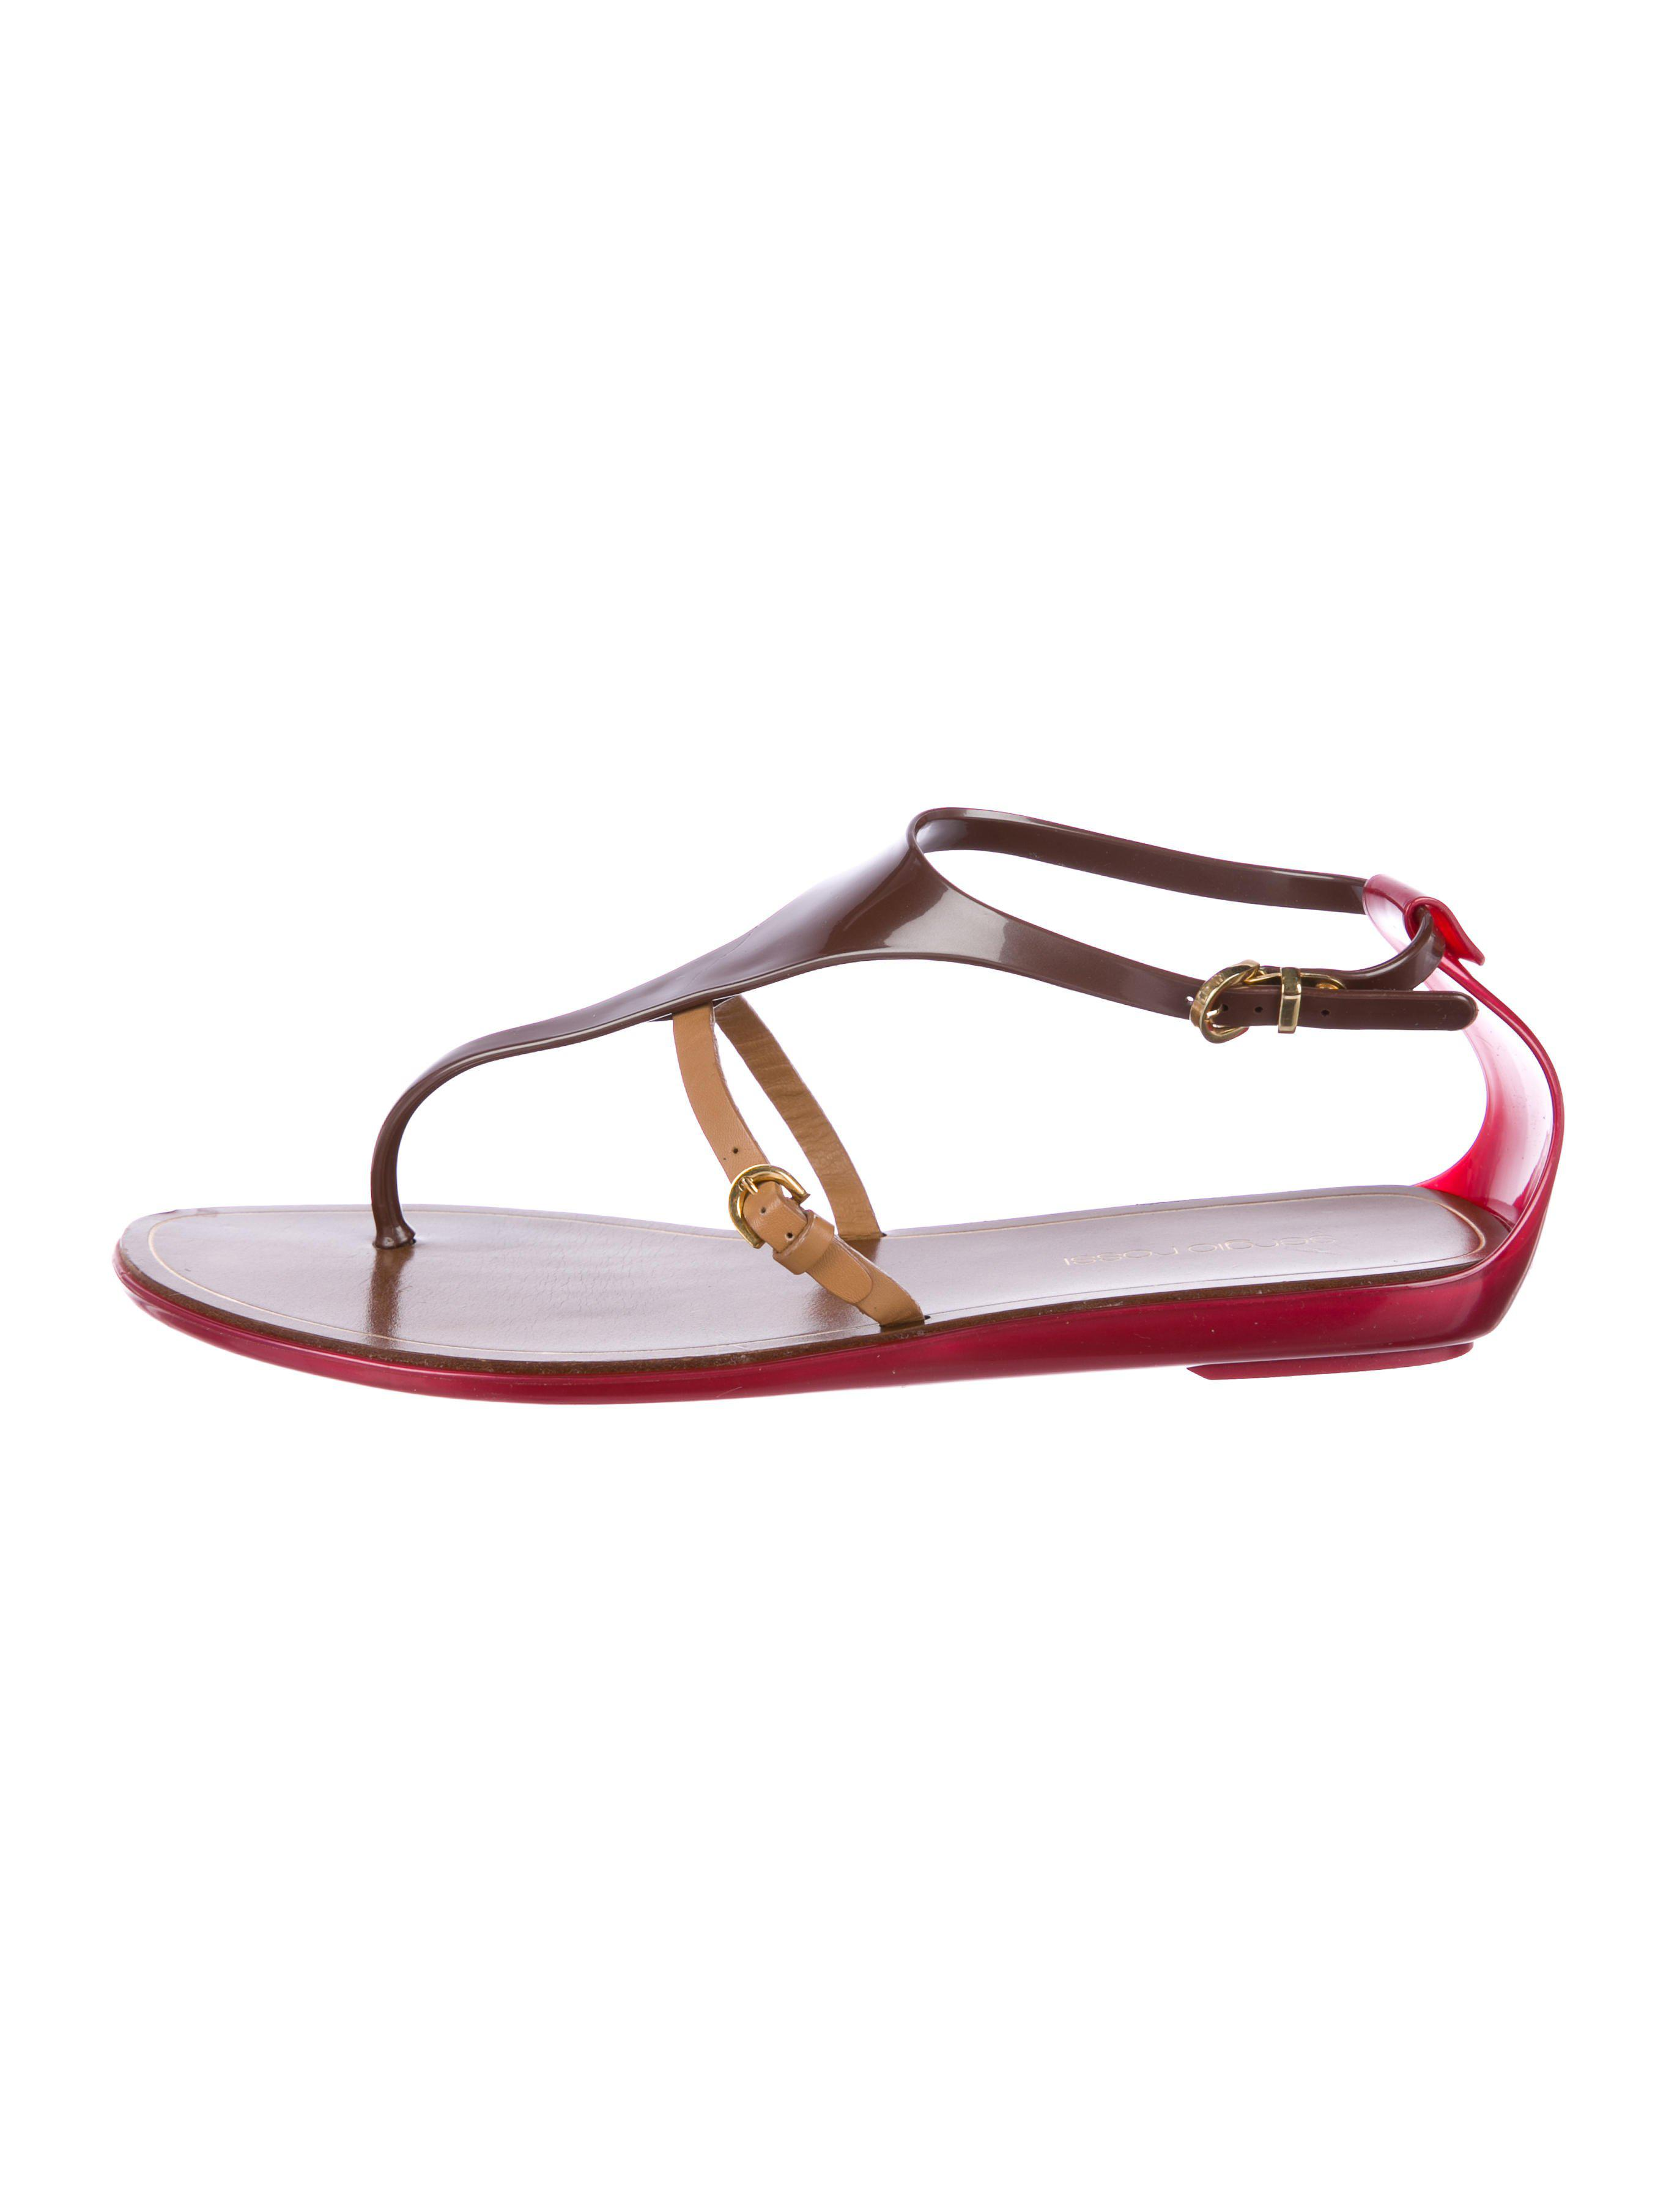 b24ece304584ee Lyst - Sergio Rossi Rubber Thong Sandals in Brown